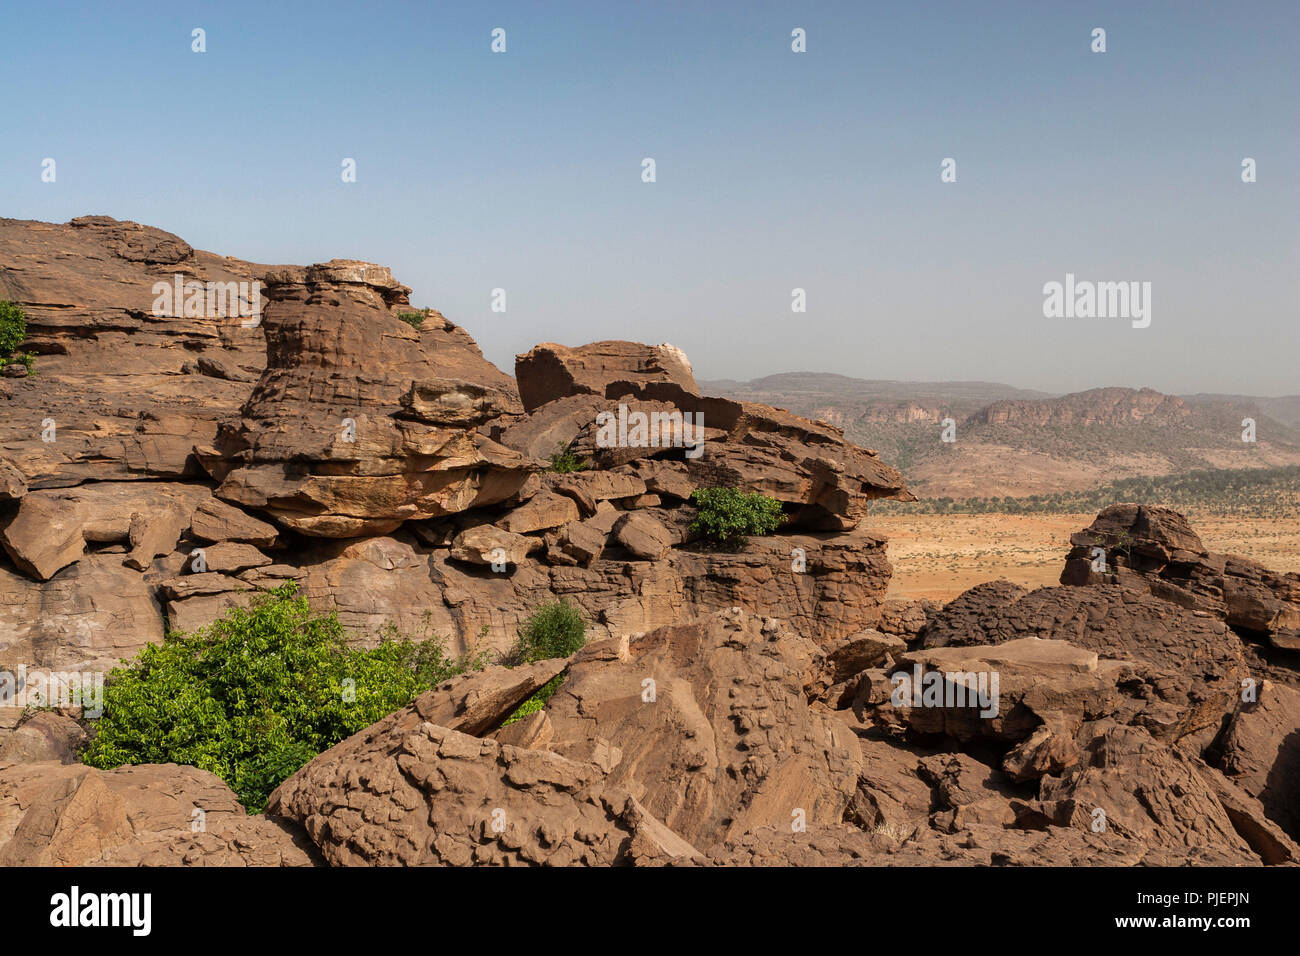 Sahel Landscape With Rocks In Dogon Country Mali Africa Stock Photo Alamy